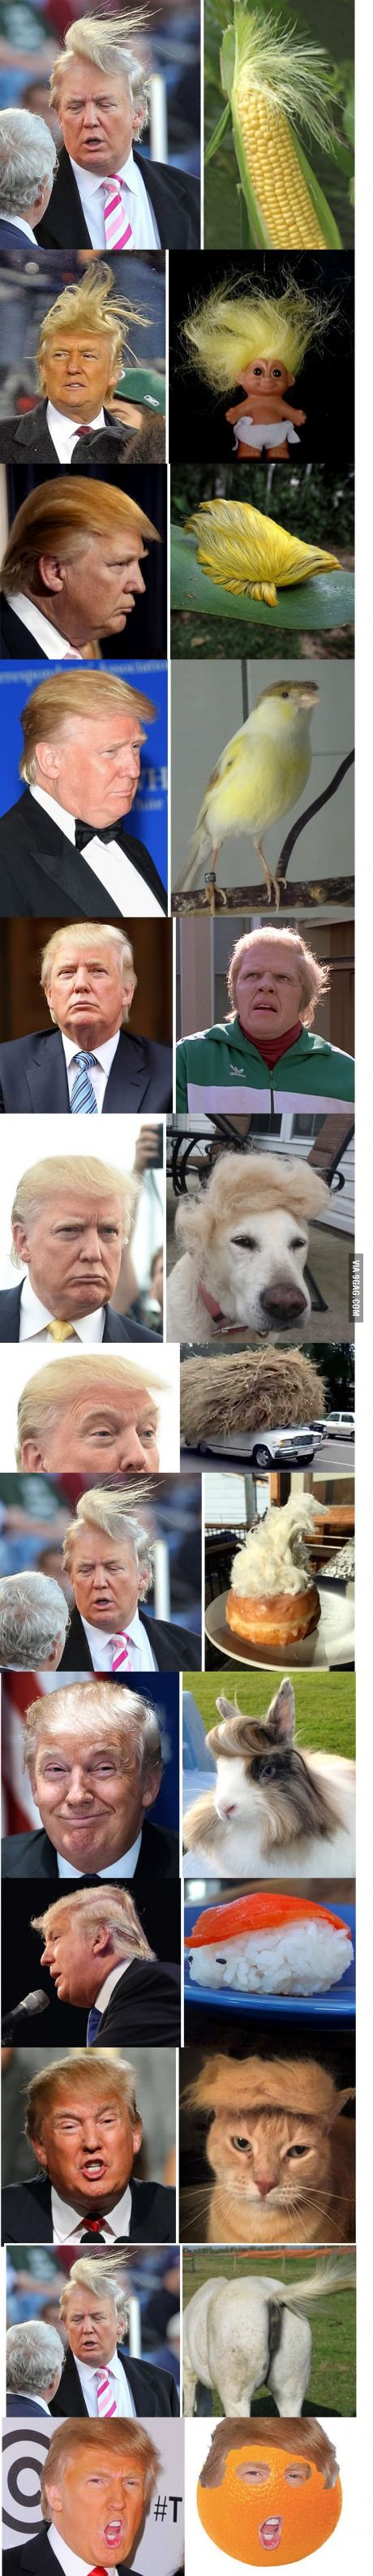 15 Things That Just Look Like Donald Trump, Who Wore It Better?: